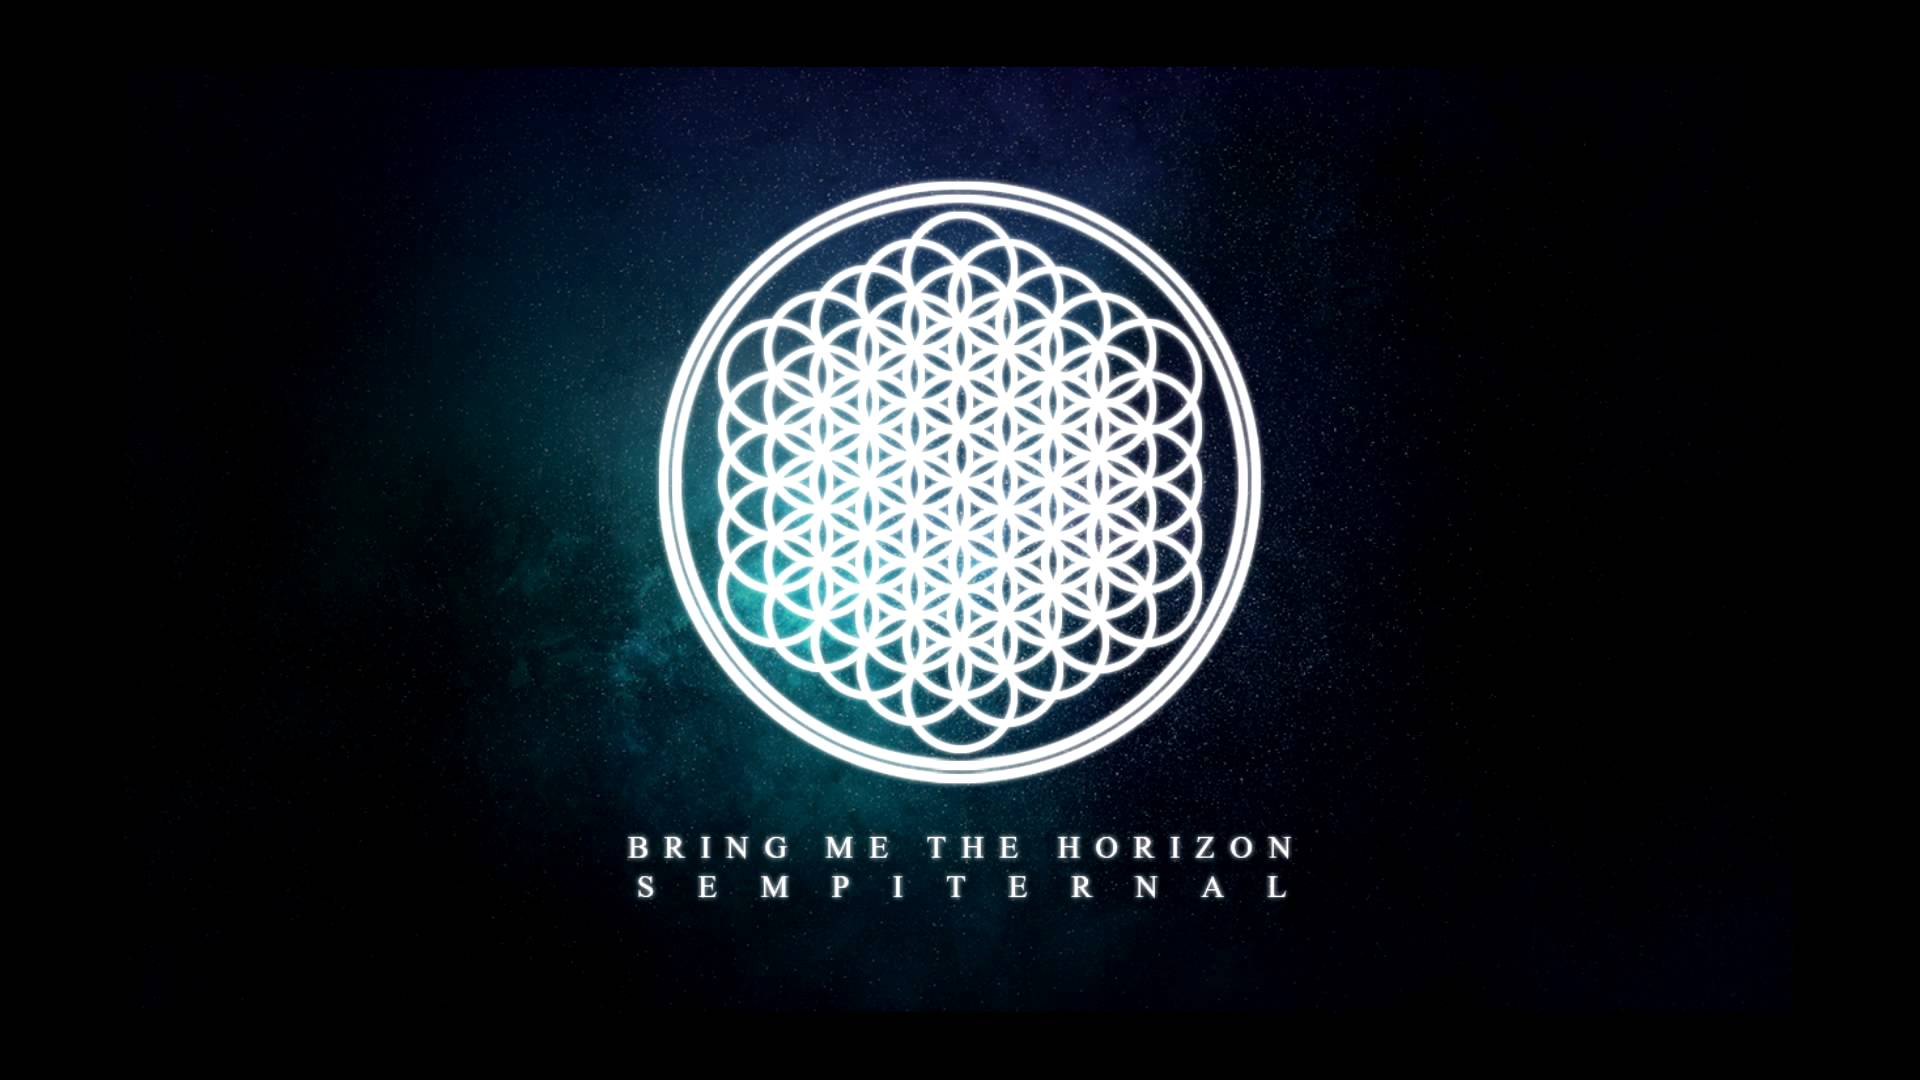 bmth wallpaper2 - photo #11